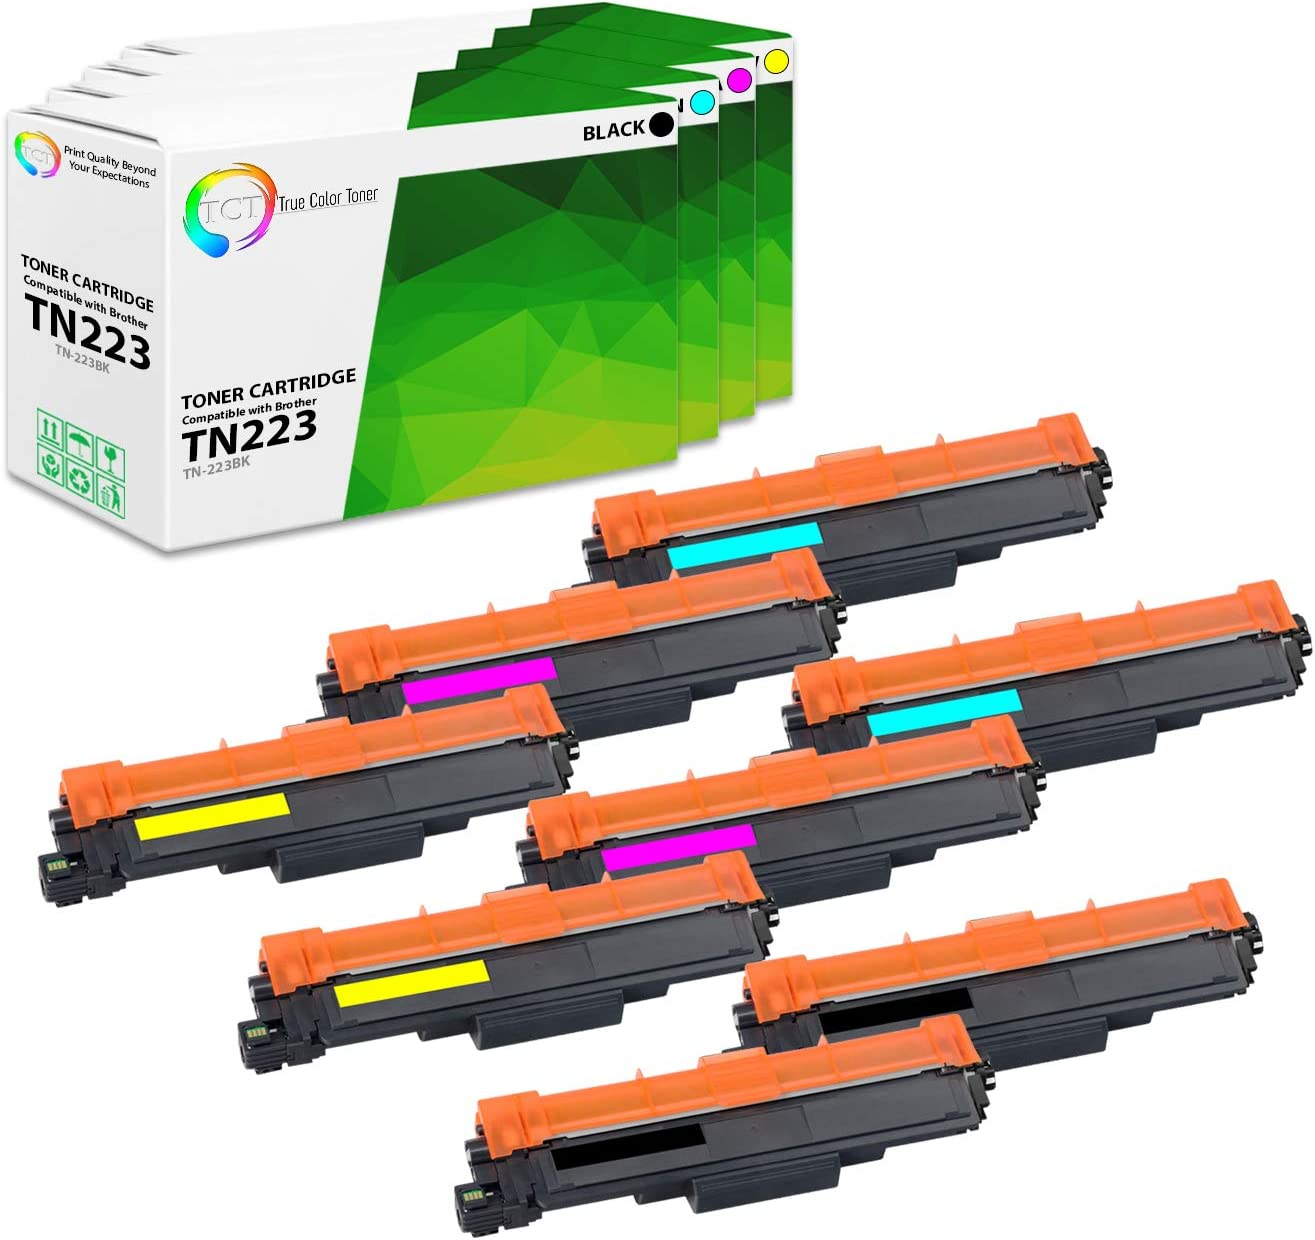 DCP-L3510CDW Printers MFC-L3710CW L3750CDW B, C, M, Y - 8 Pack TCT Premium Compatible Toner Cartridge Replacement with Chip for Brother TN223 TN-223 works with Brother HL-L3210CW L3230CDW L3270CDW